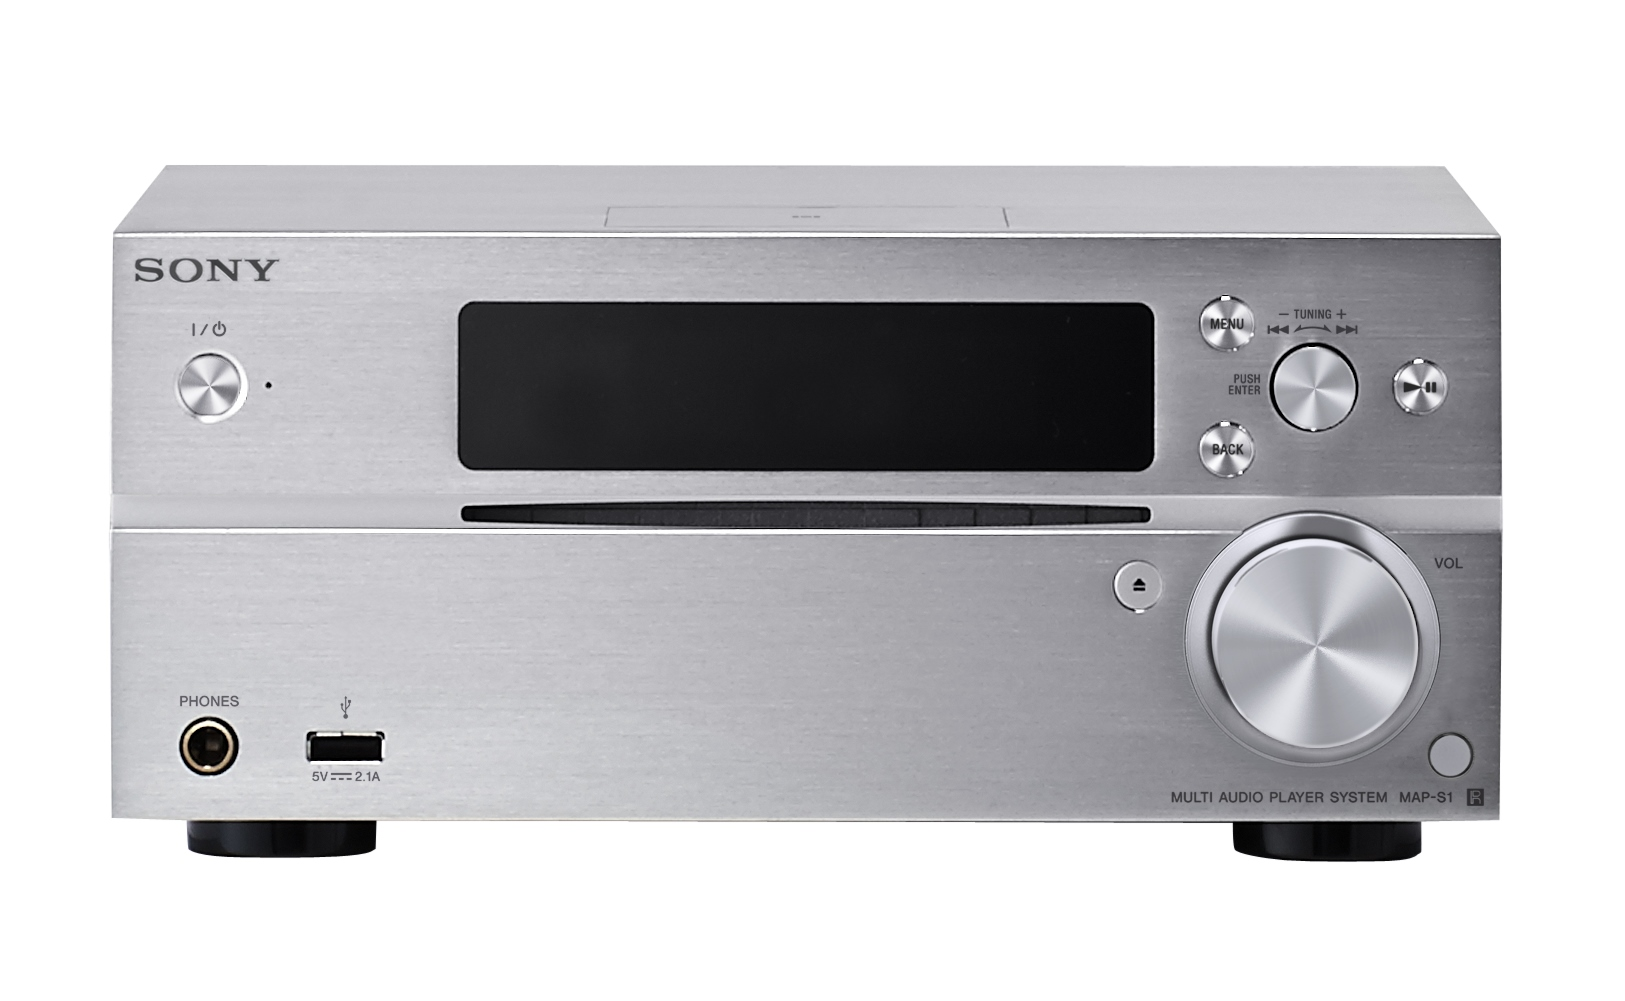 Sony enters the network CD receiver market as part of their new home AV lineup